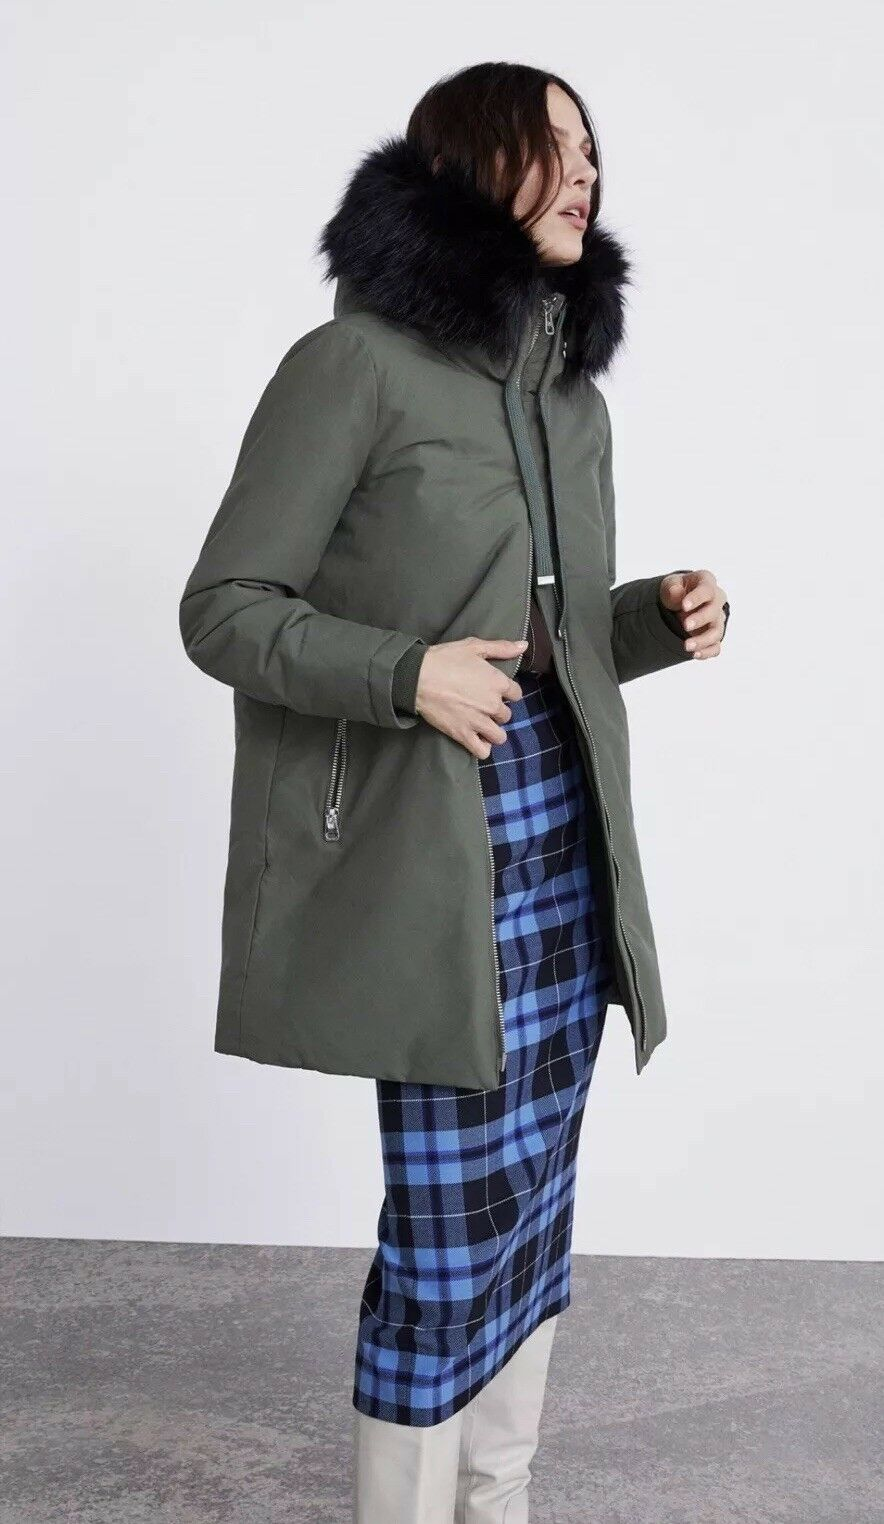 Zara Khaki Water Repellent Quilted Parka Coat Size S Bnwt